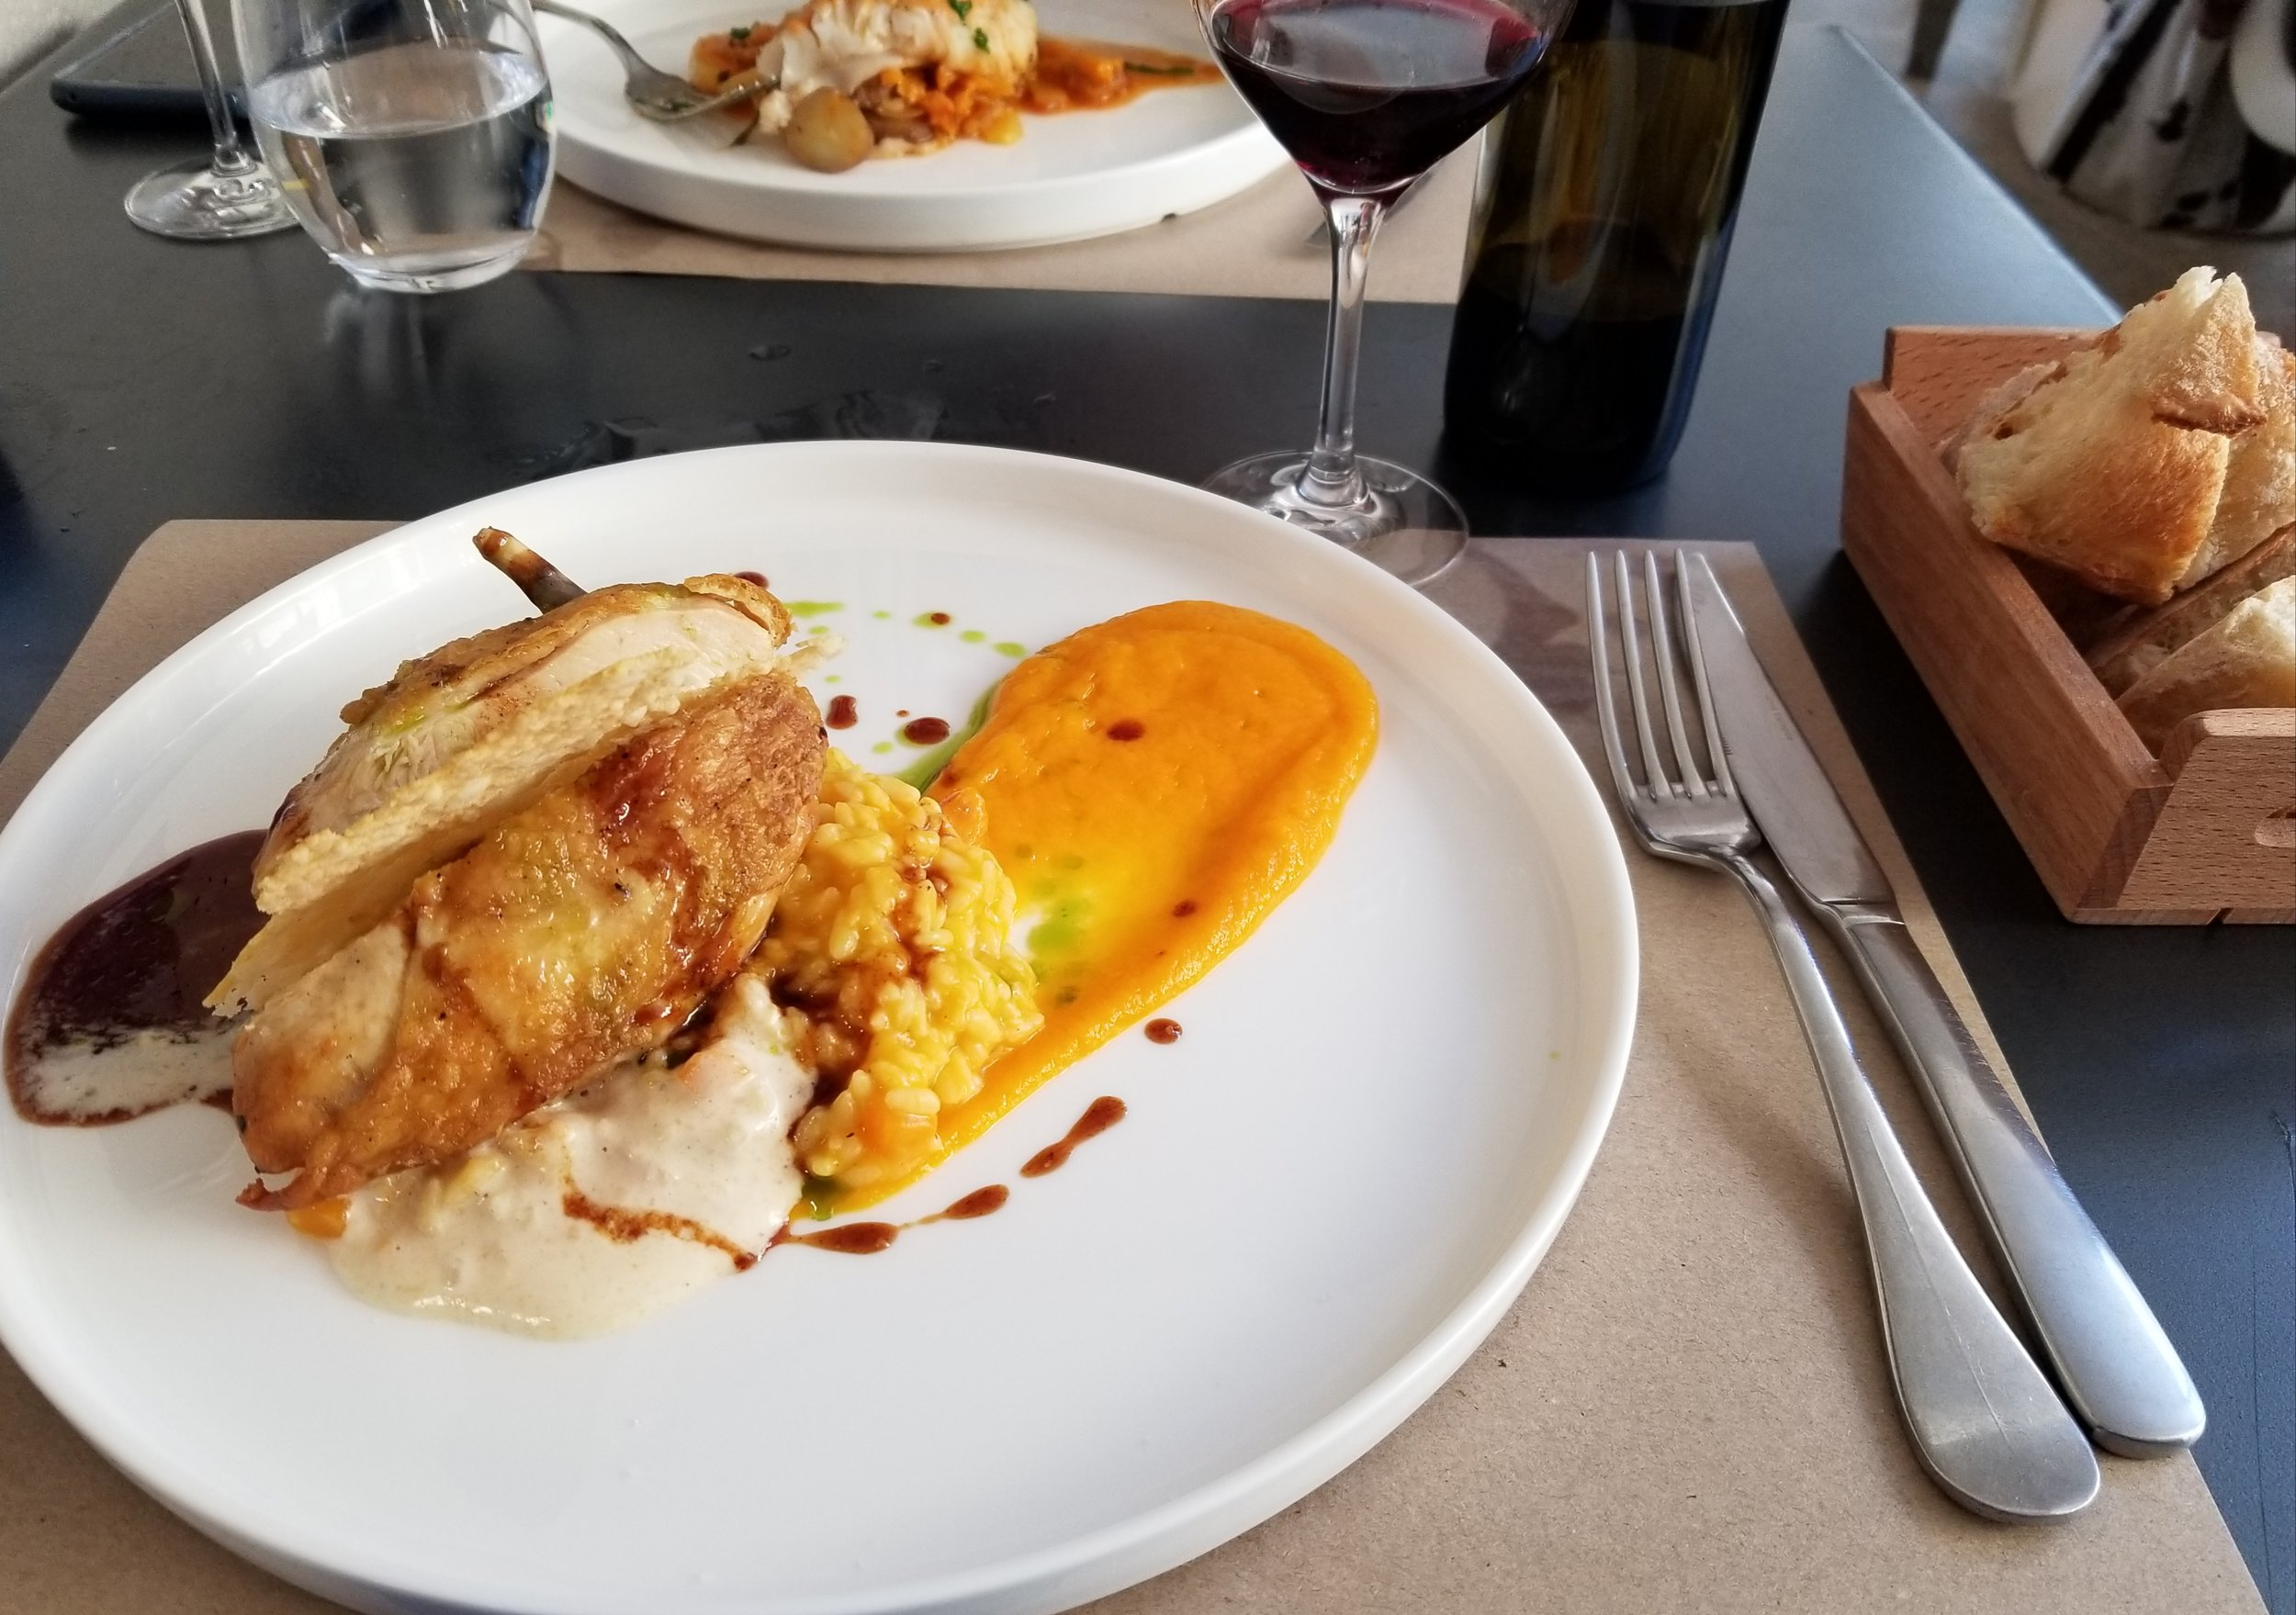 Supreme de Volaille (chicken) with butternut squash risotto and puree of butternut squash